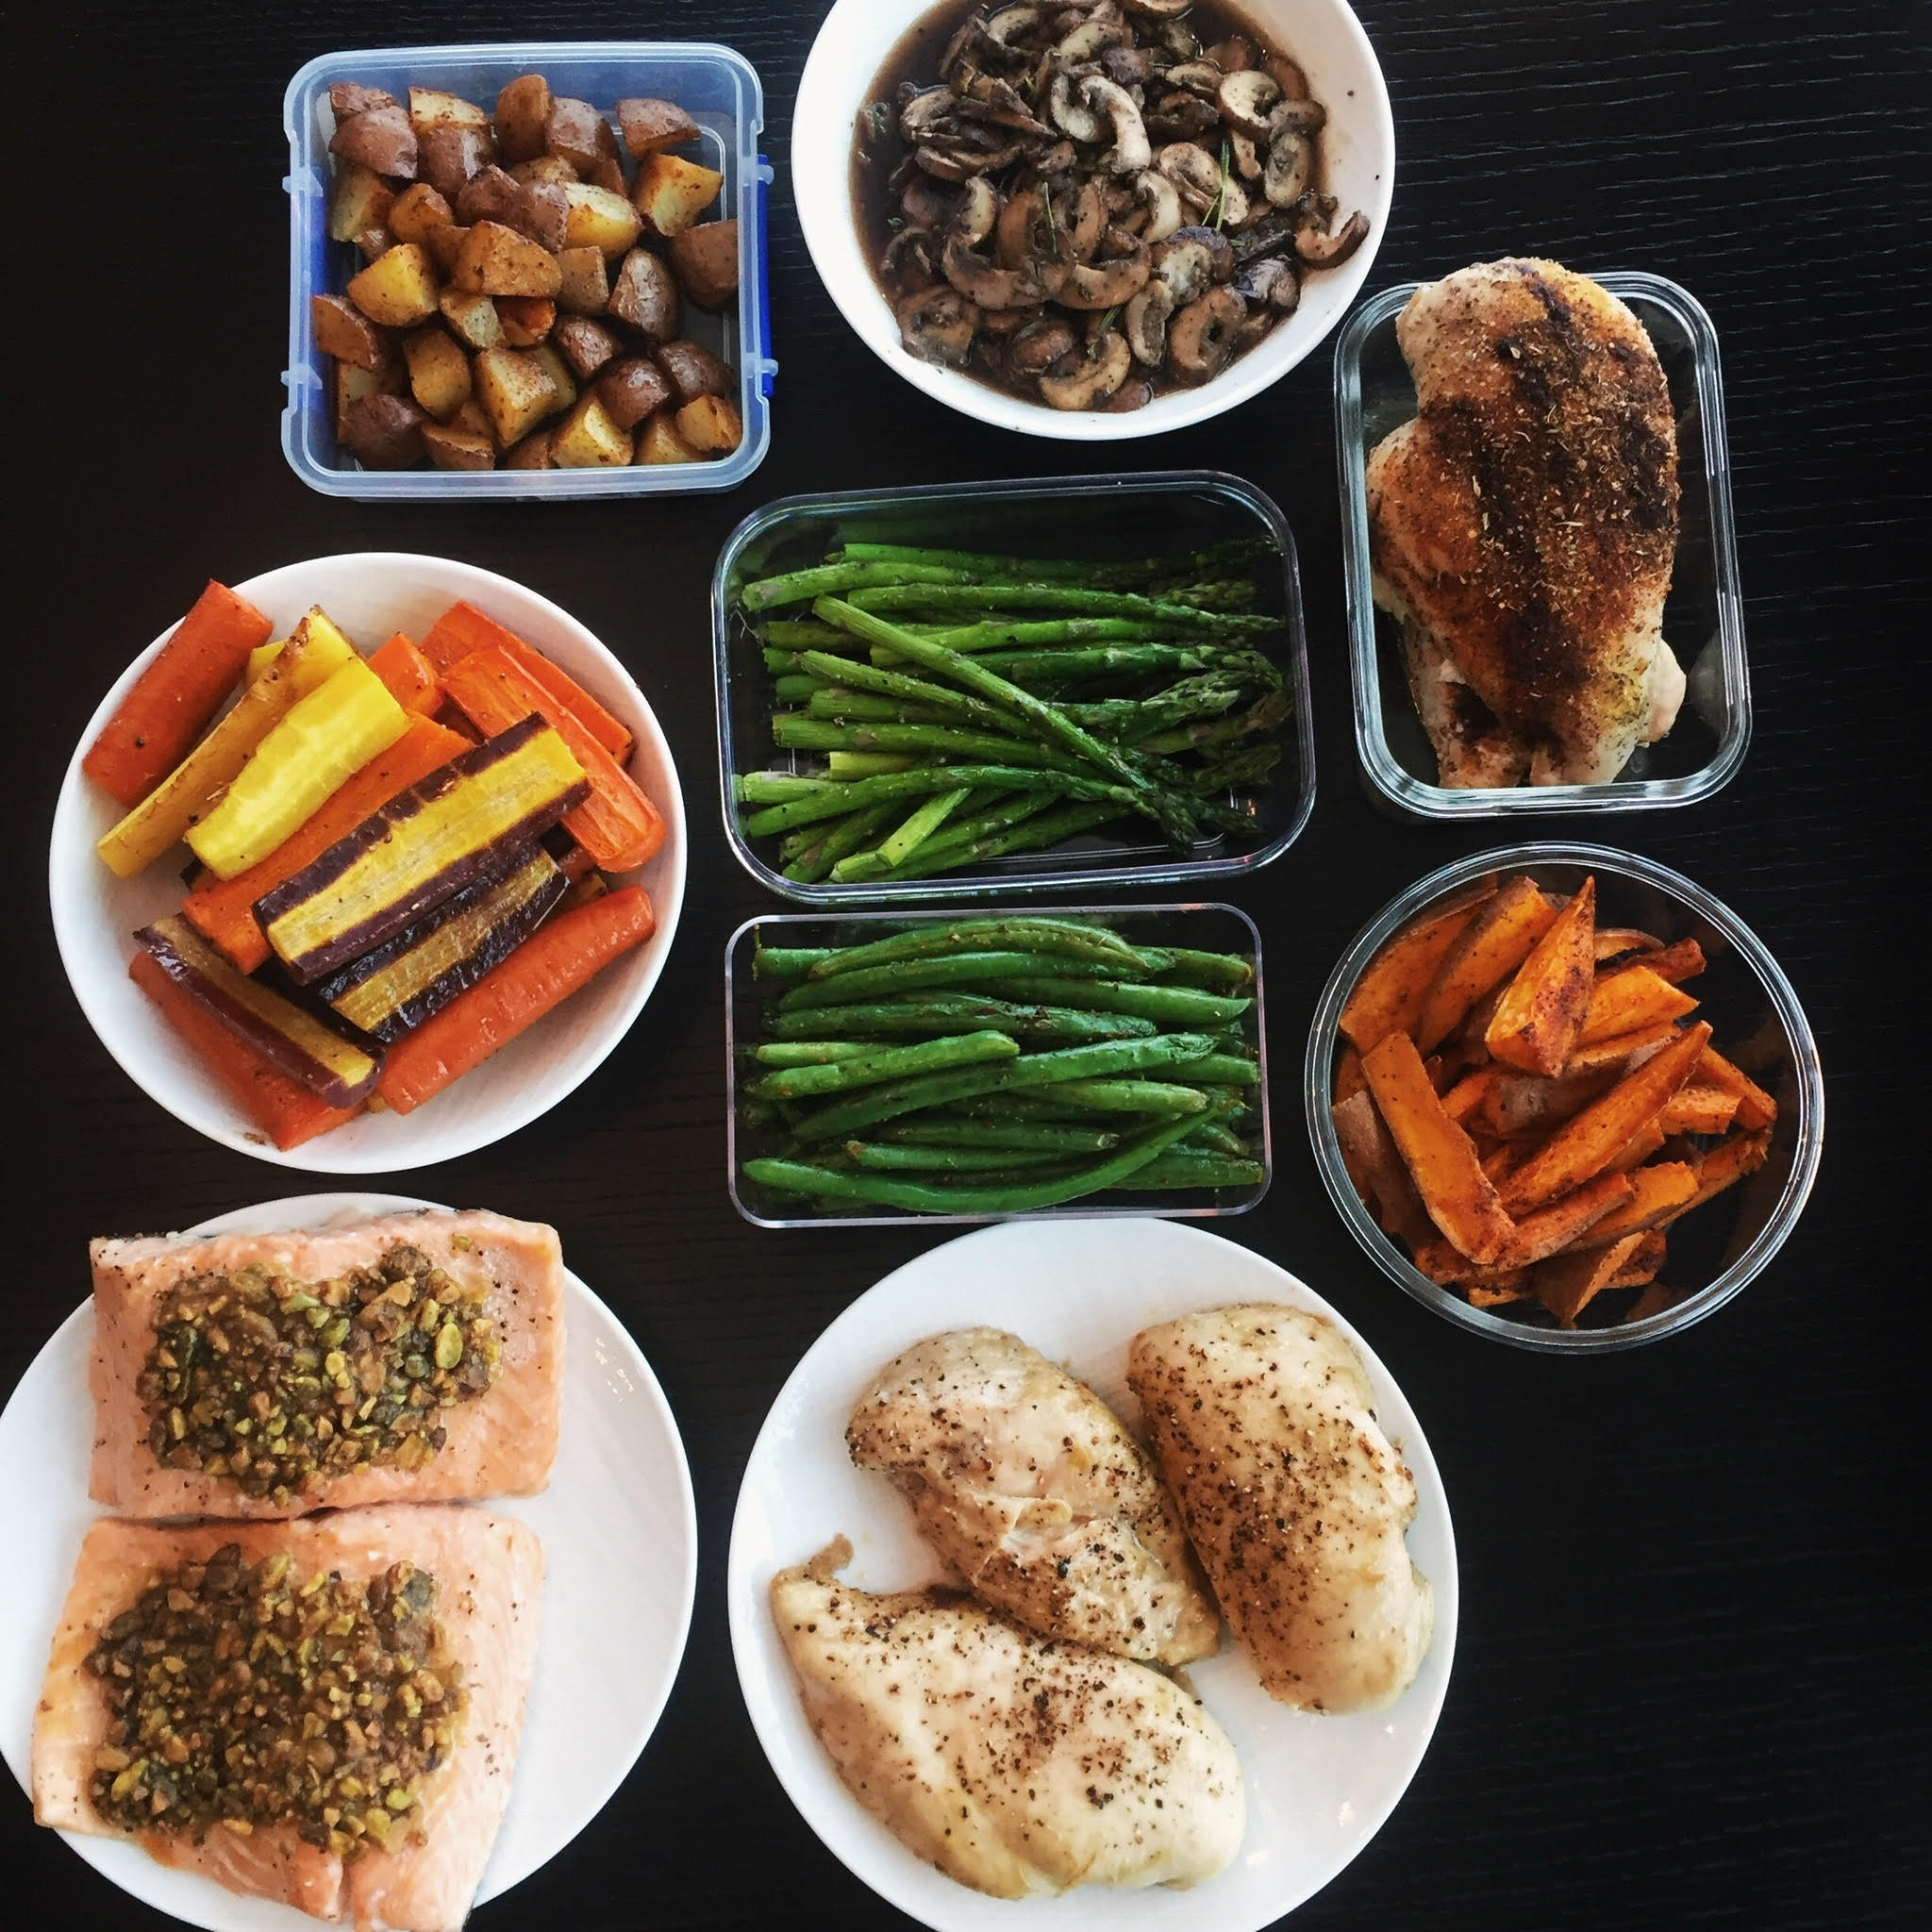 A Look Back At My Monthly Meal Prep - April 2017